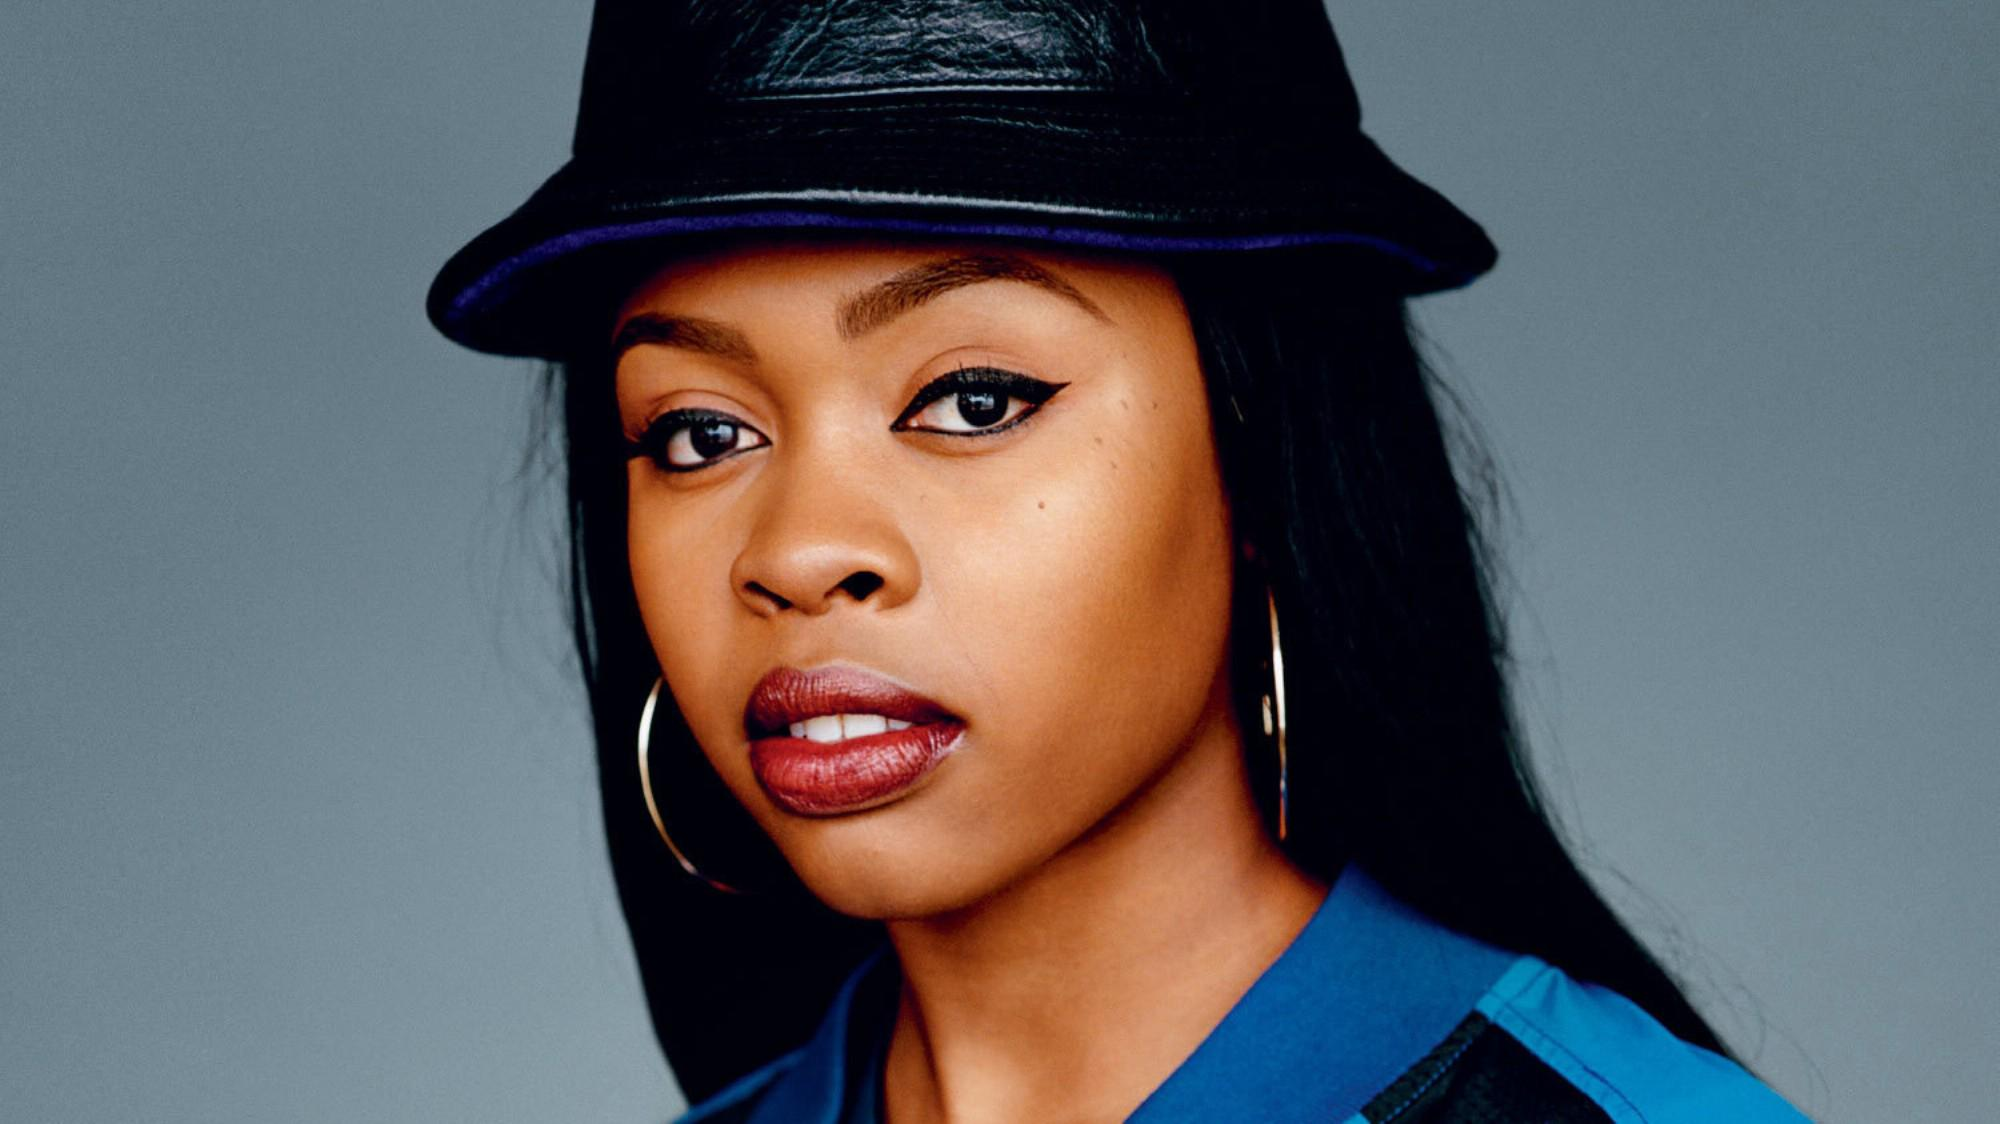 .@Official_Tink's new video proves she's one in a million: http://t.co/X0BICsoaWp http://t.co/gTbbJ8Dv36